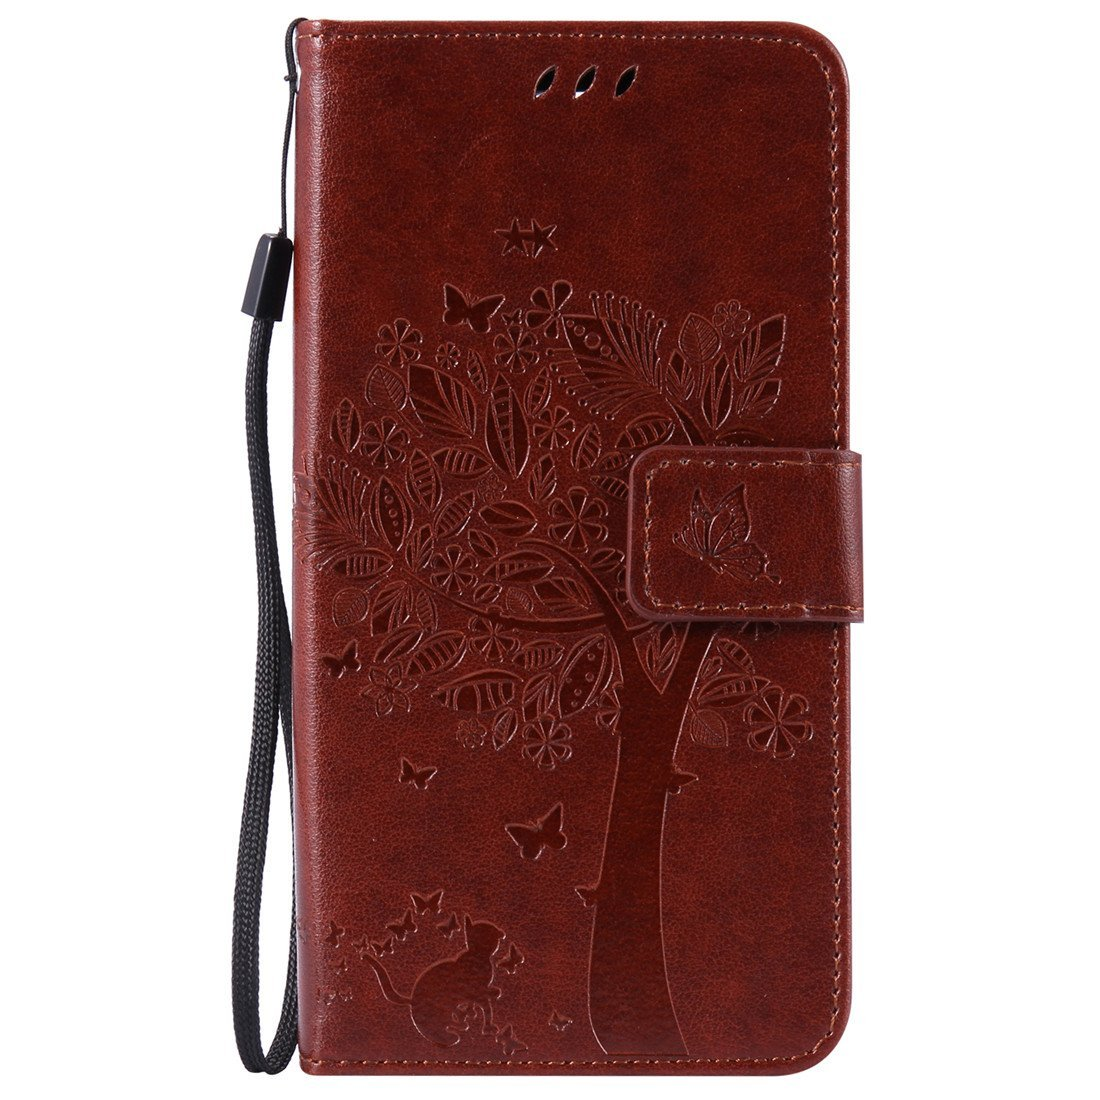 LG K8 Case, LG Escape 3 Case, LG Phoenix 2 Case, Love Sound [Cat Tree Butterfly/Coffee] [Wrist Strap] PU Leather Wallet Case Flip Cover Built-in Card Slots Stand for LG Escape 3 / LG Phoenix 2 / LG K8